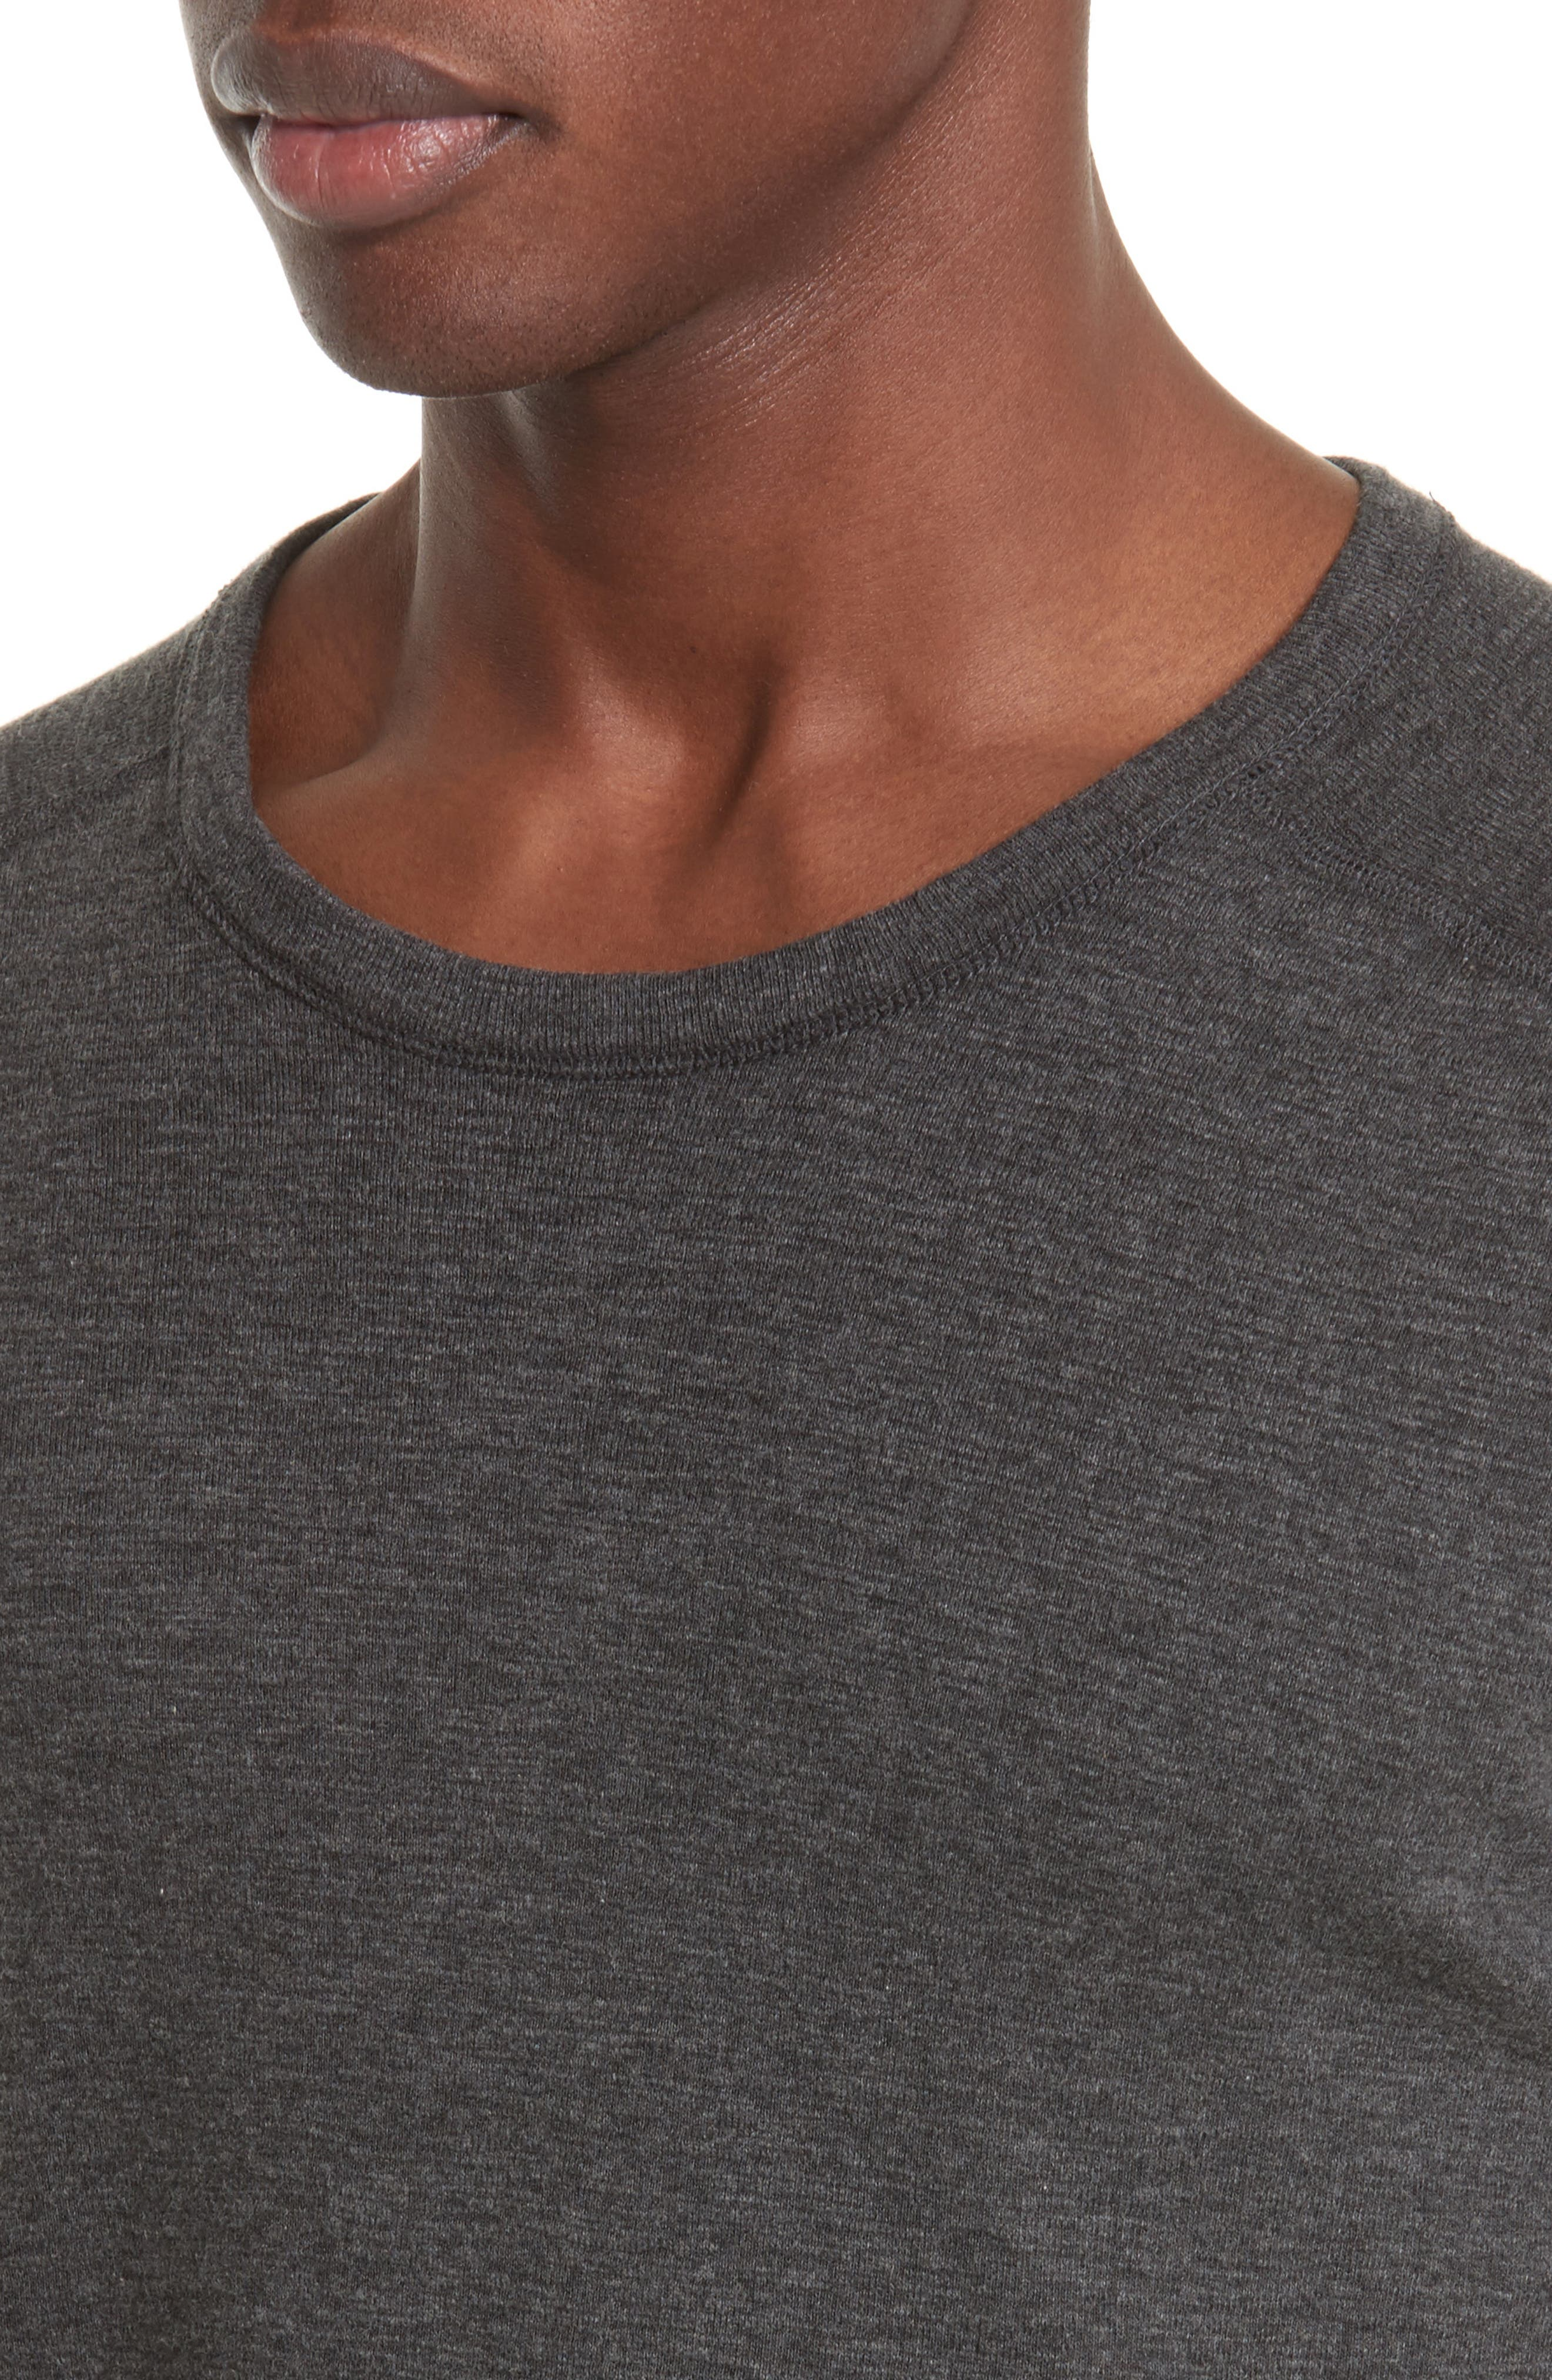 WINGS + HORNS, Ribbed Slub Cotton T-Shirt, Alternate thumbnail 4, color, HEATHER CHARCOAL